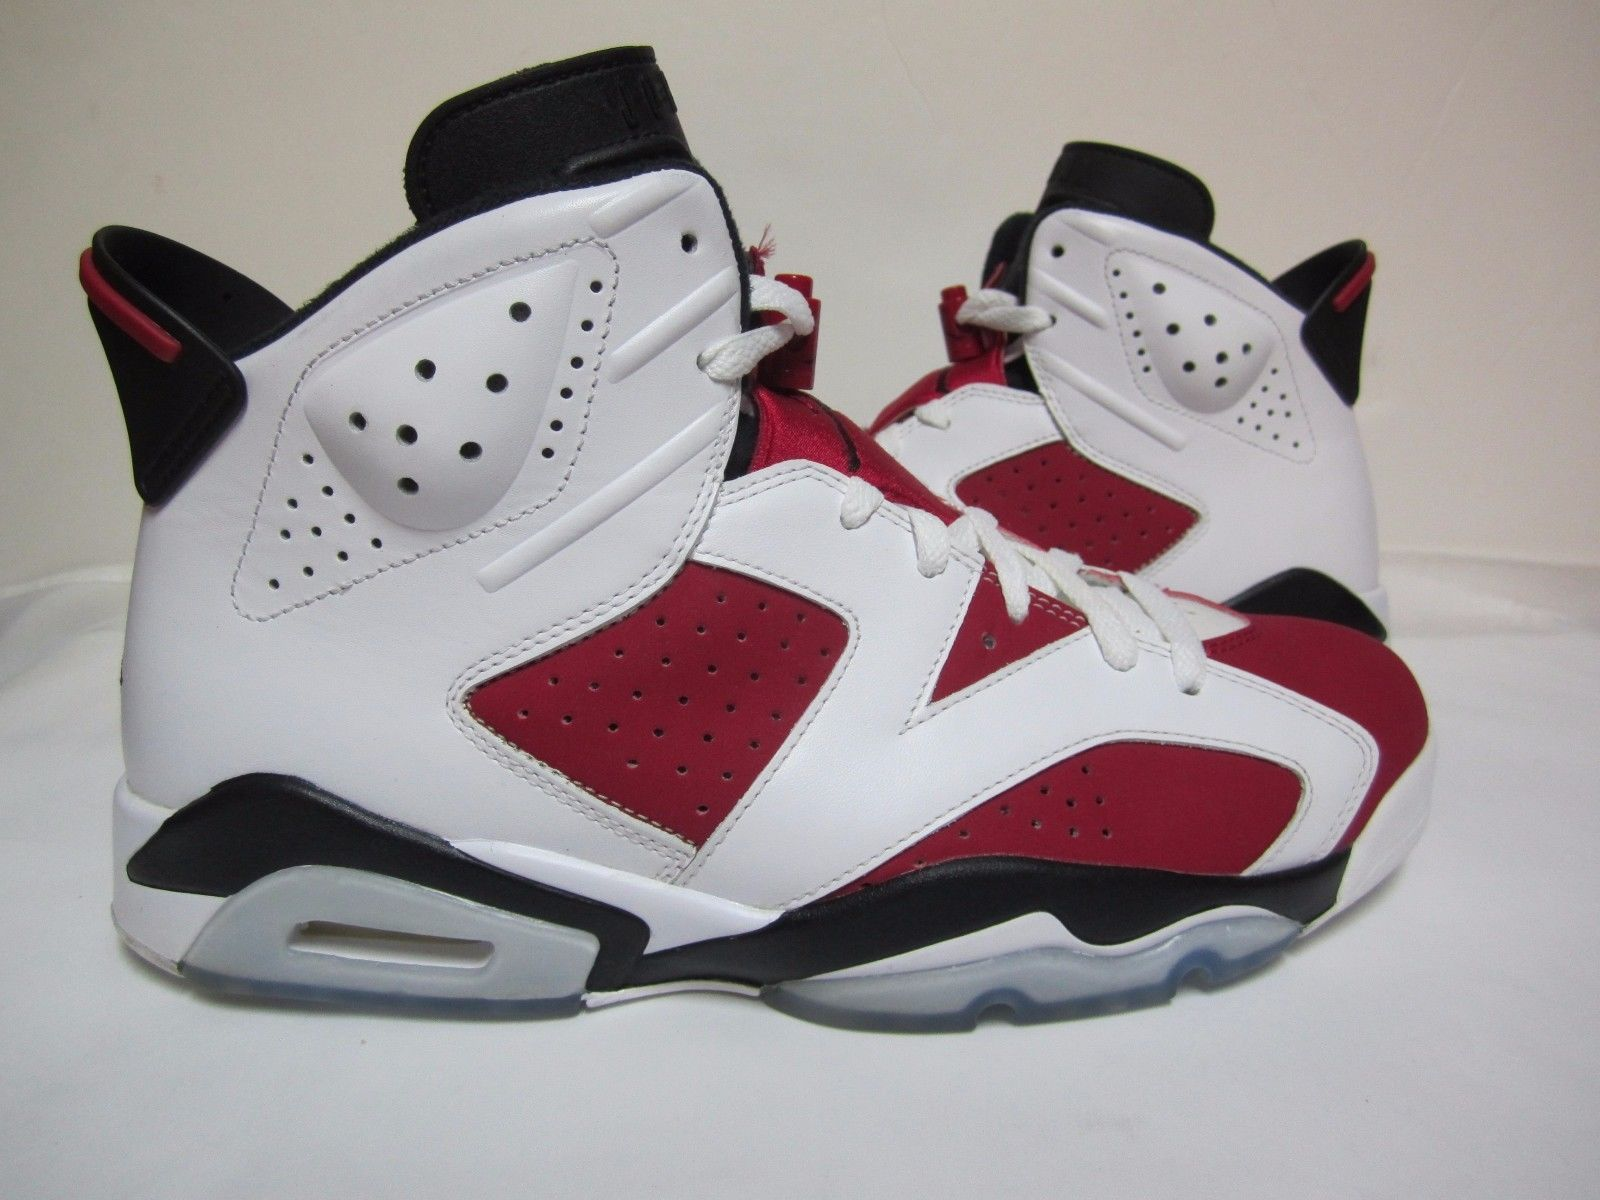 f34e004321e18 Air Jordan 6 Retro Carmine style code  384664-160 colorway  white red black  Brand new size 11.5 BUY IT NOW Brand New size 13 BUY IT NOW We have  partnered ...